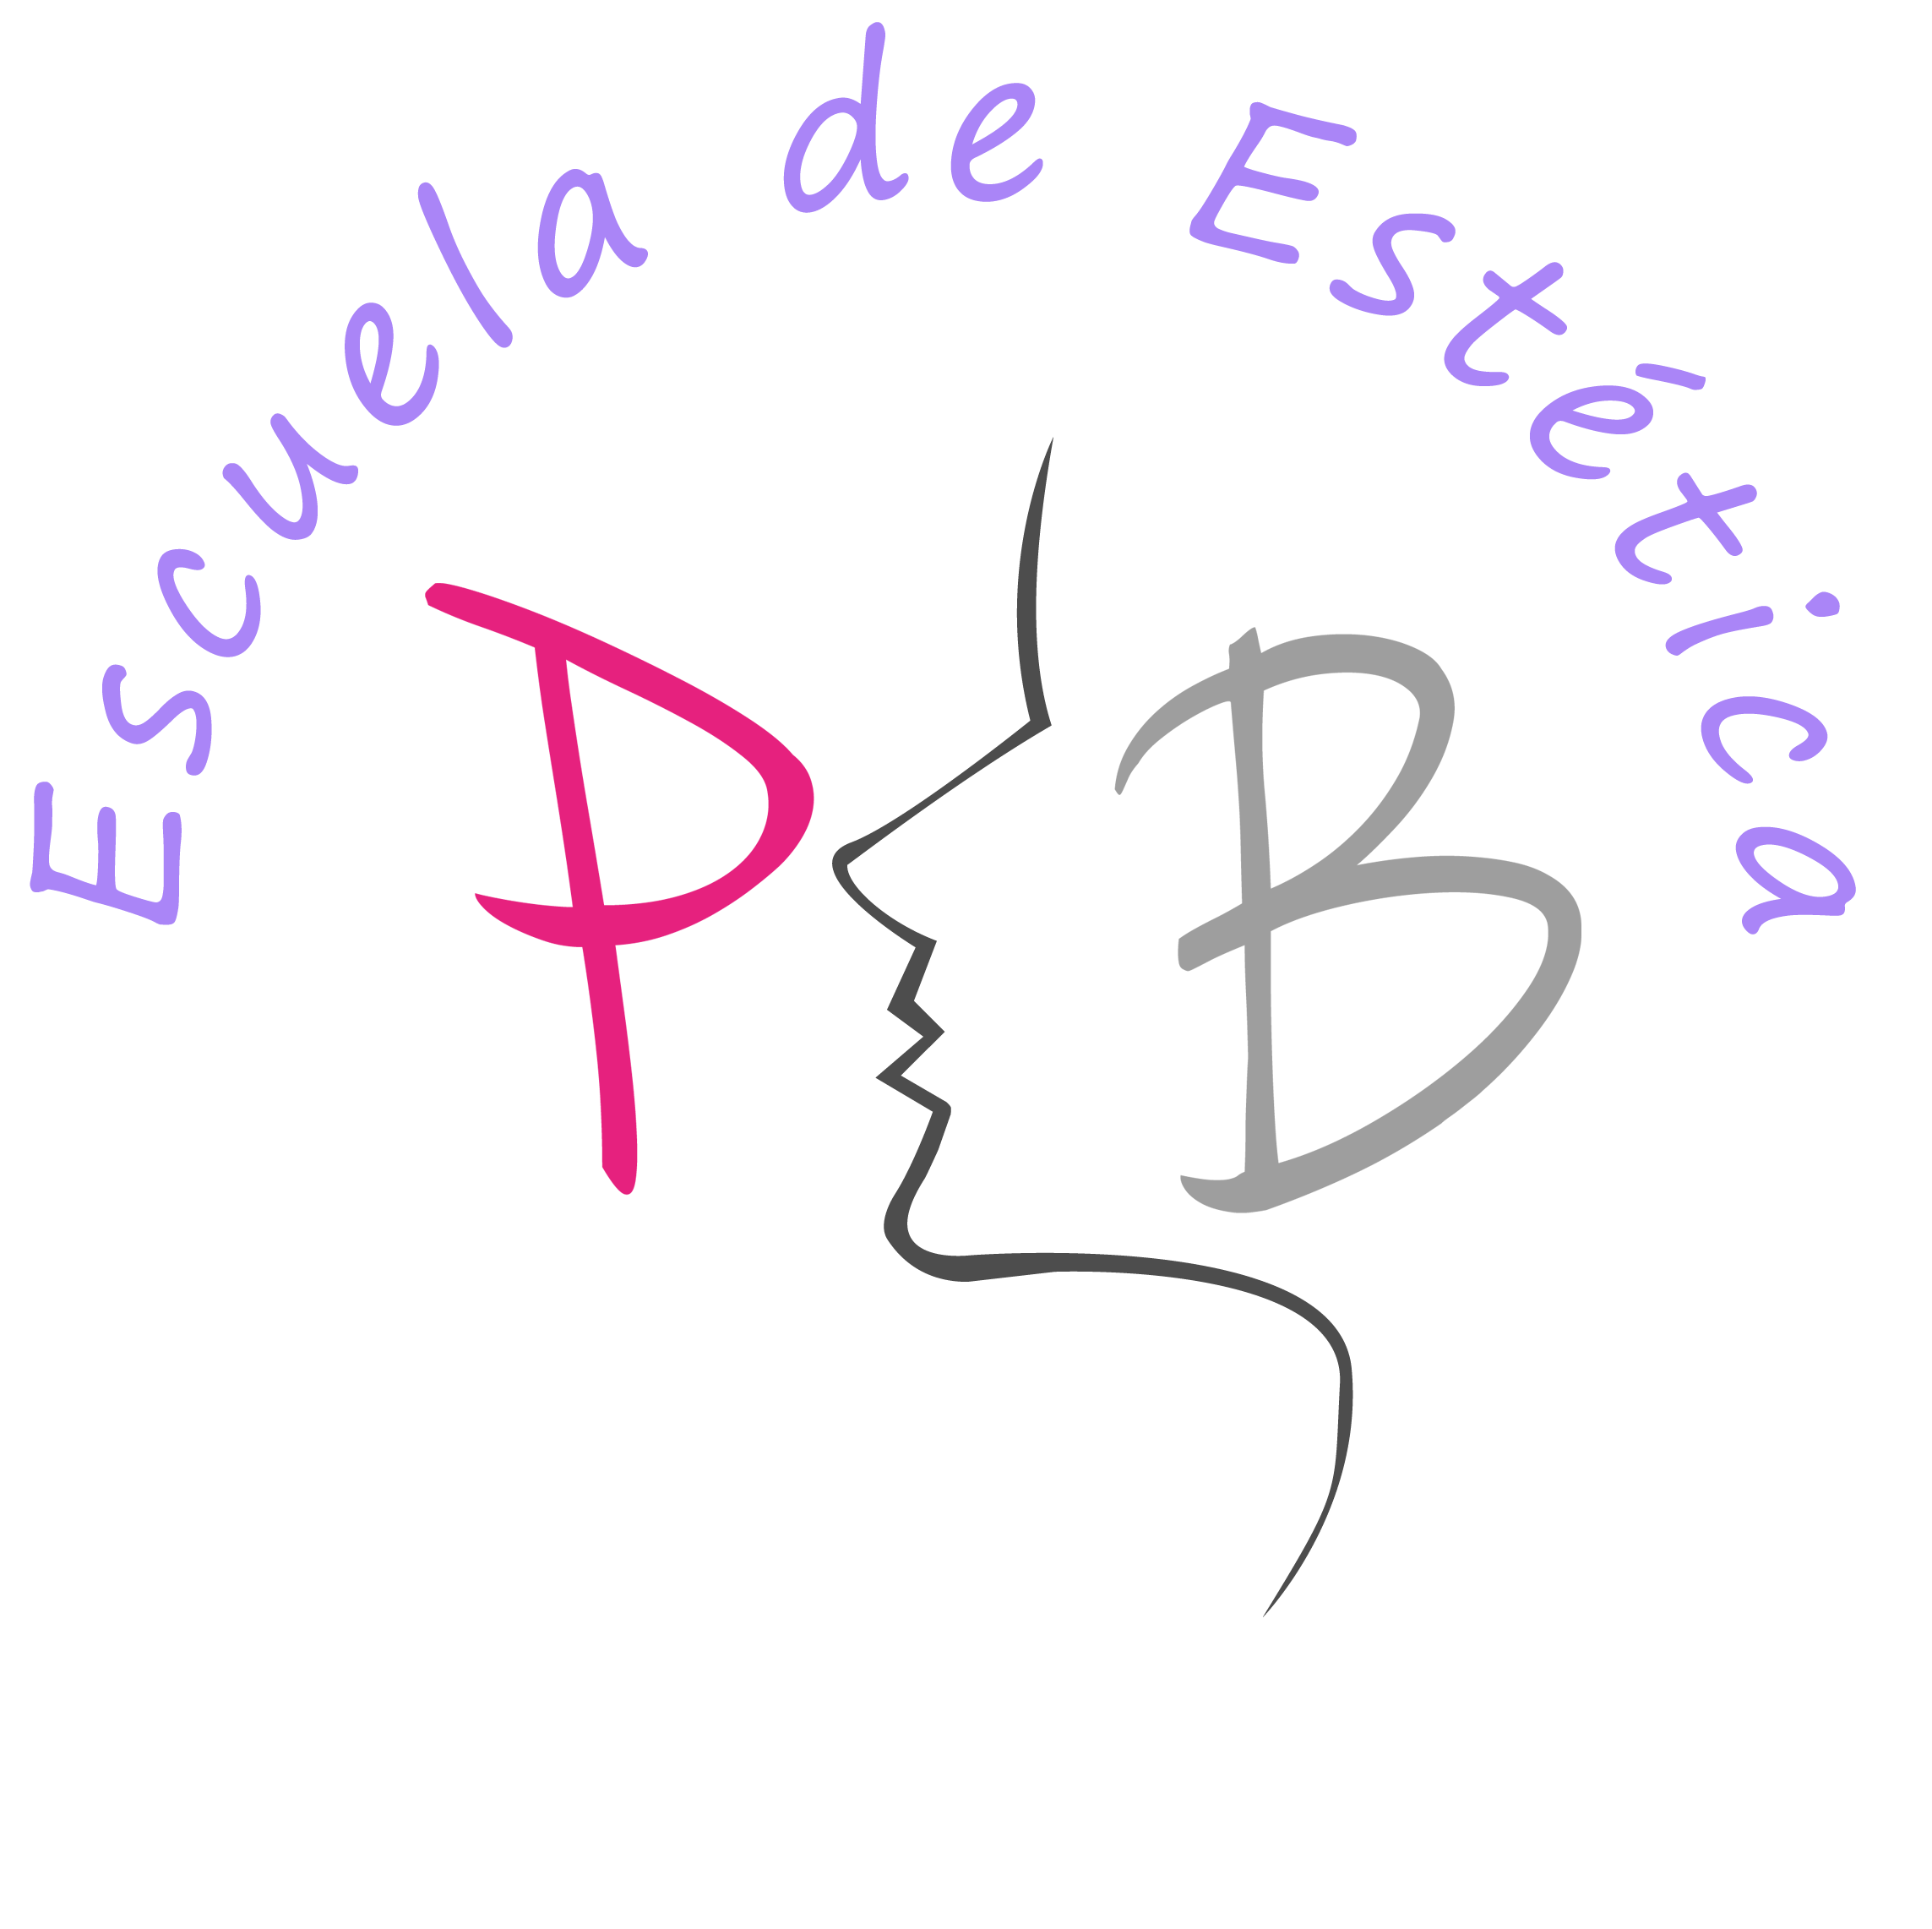 Escuela PB